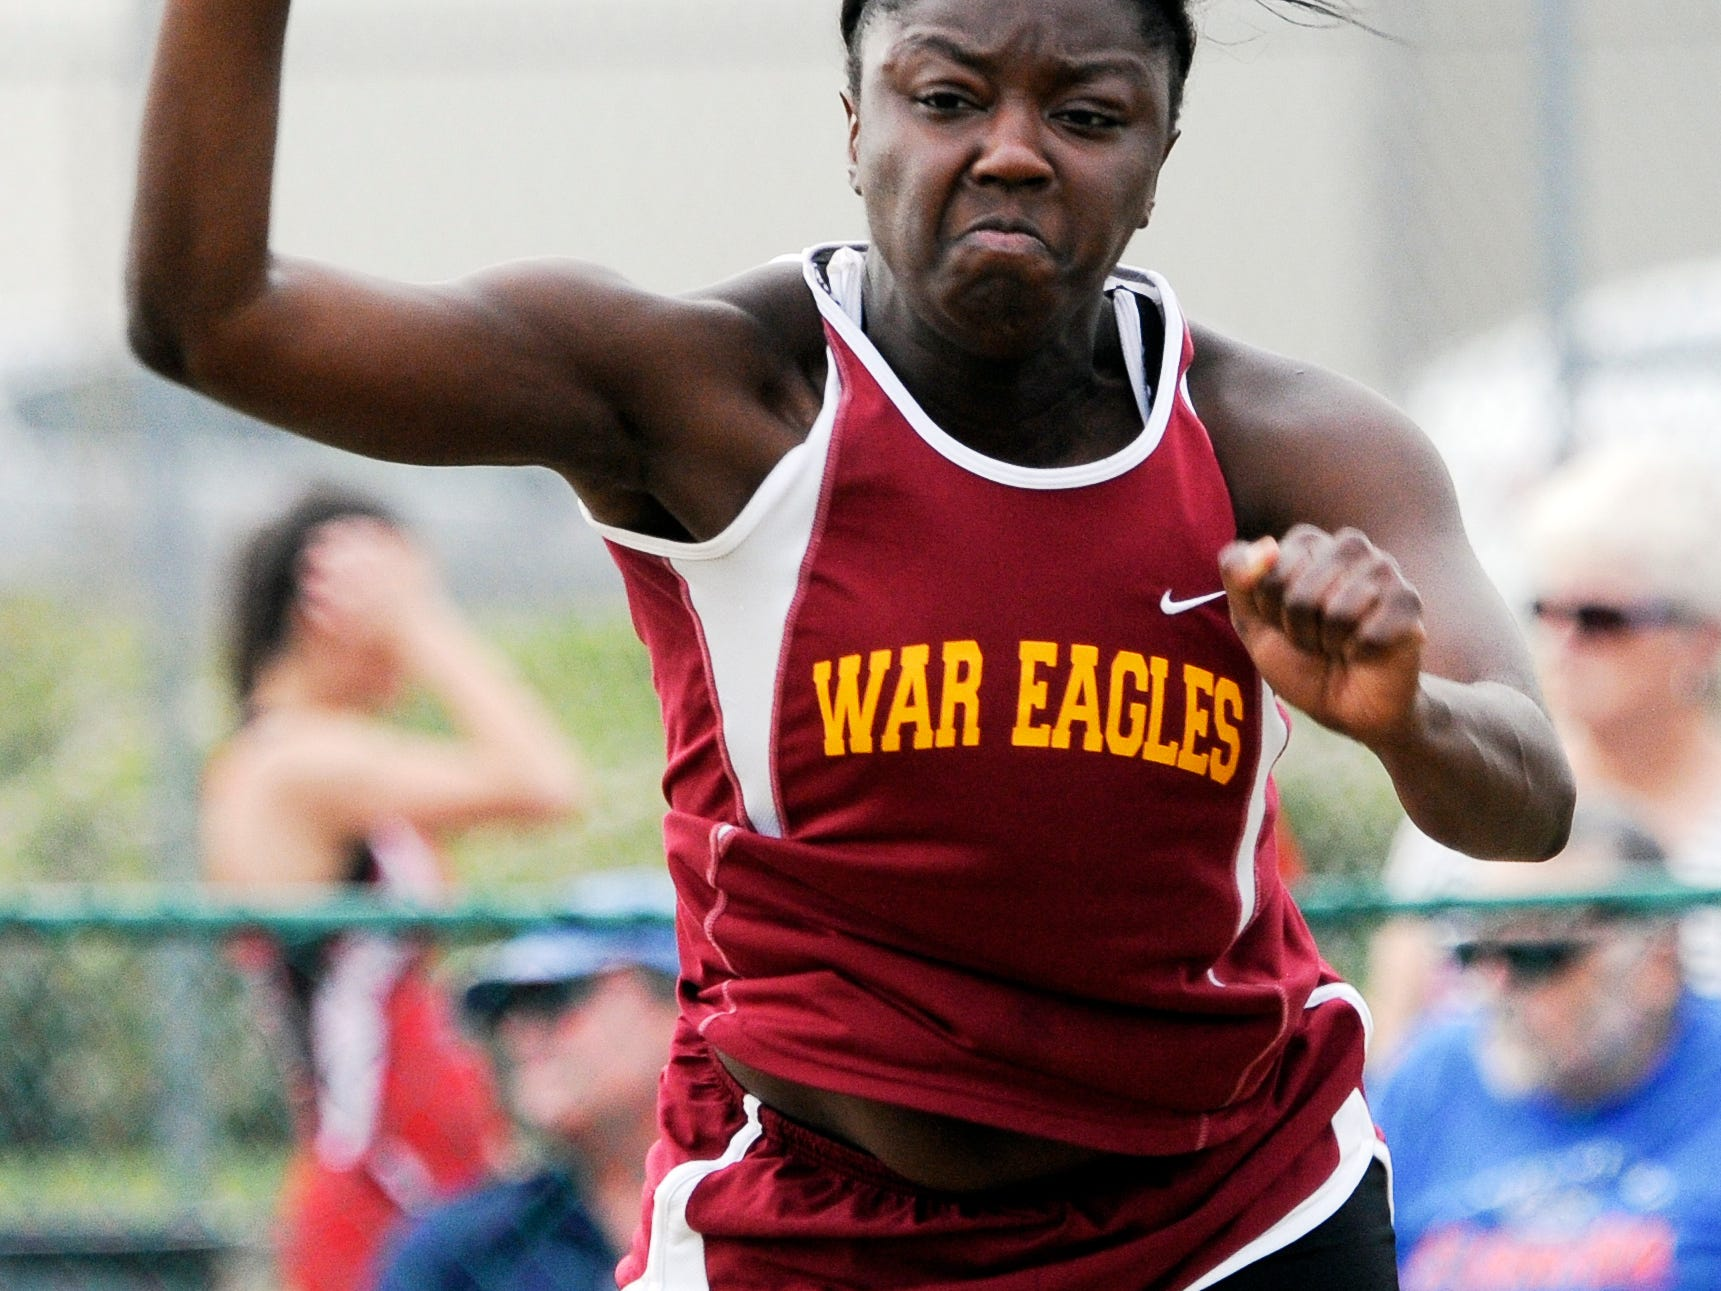 Keona Cadore of Astronaut High School will compete in the shot put and discus Friday in Jacksonville at the state track and field championships.